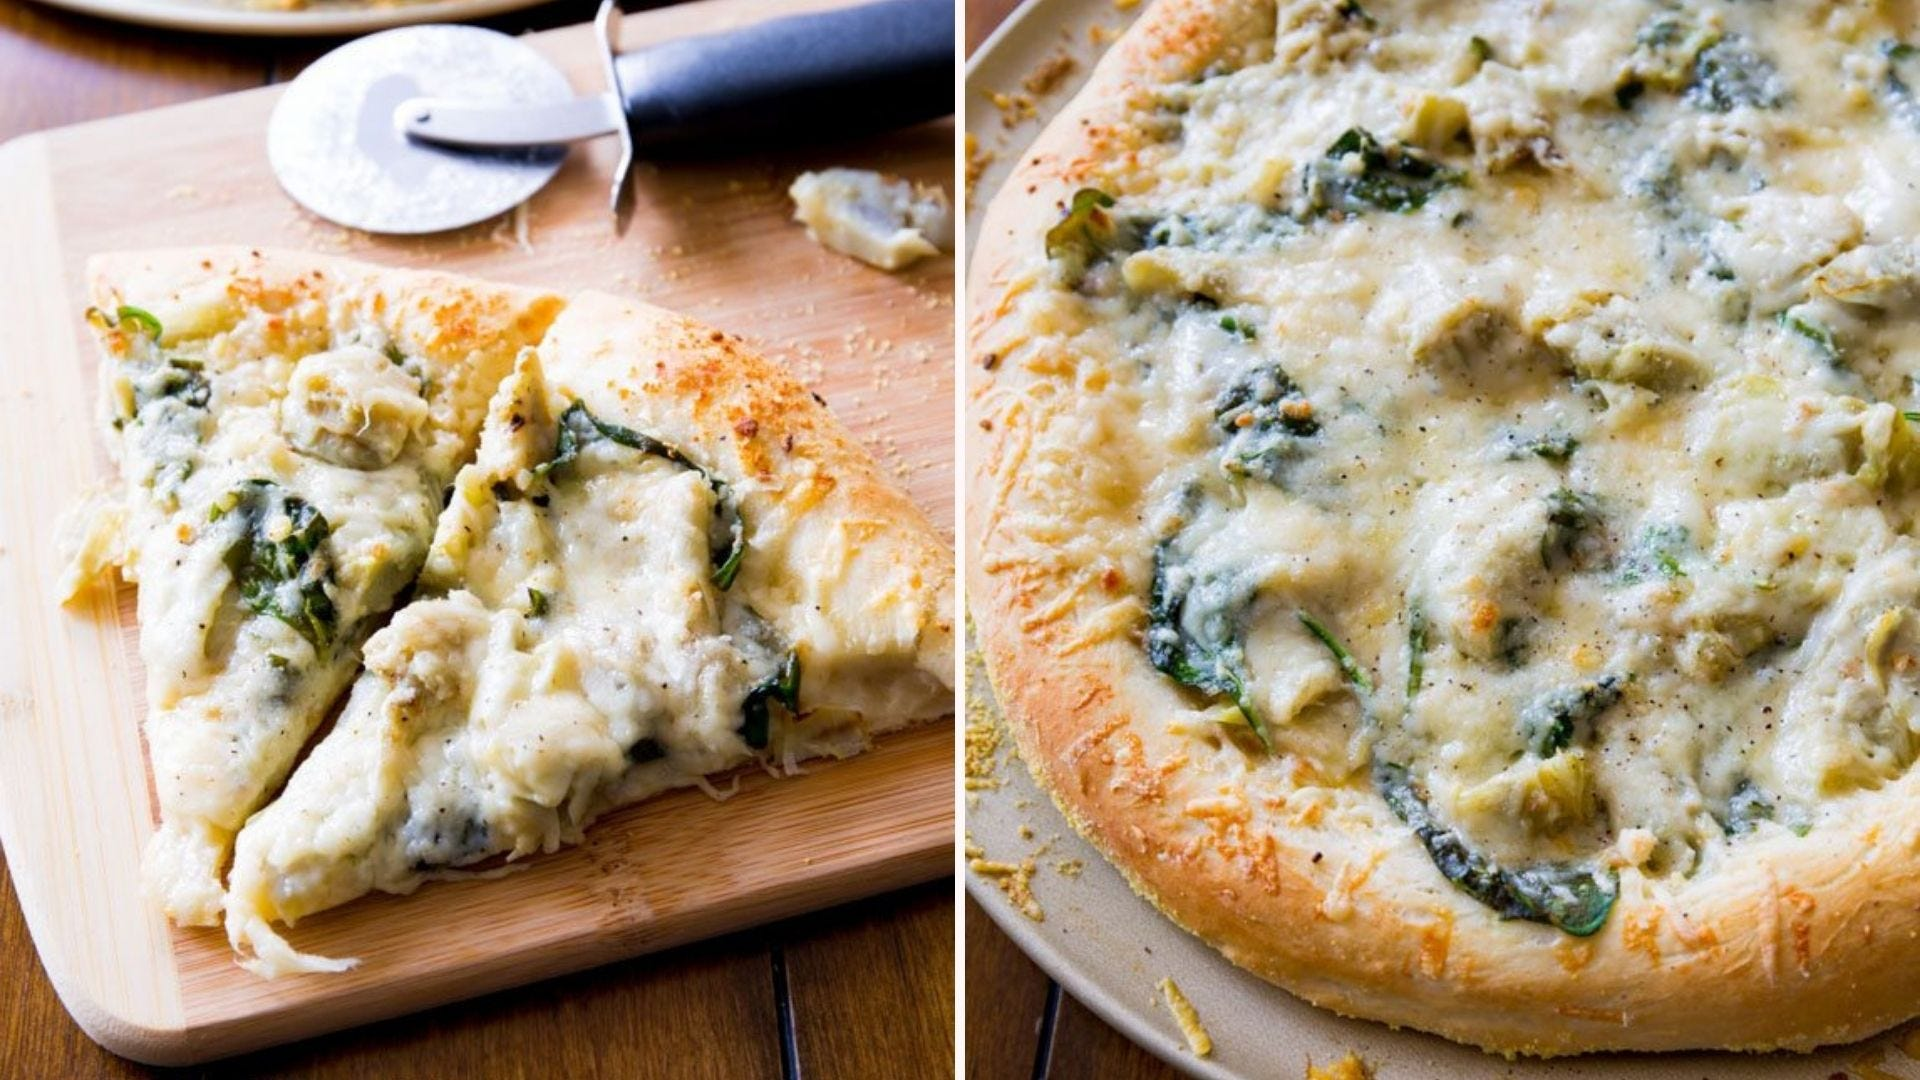 Two images of spinach and artichoke pizza: The left image is of two slices with a pizza cutter in the background, and the right image is of a whole pizza.